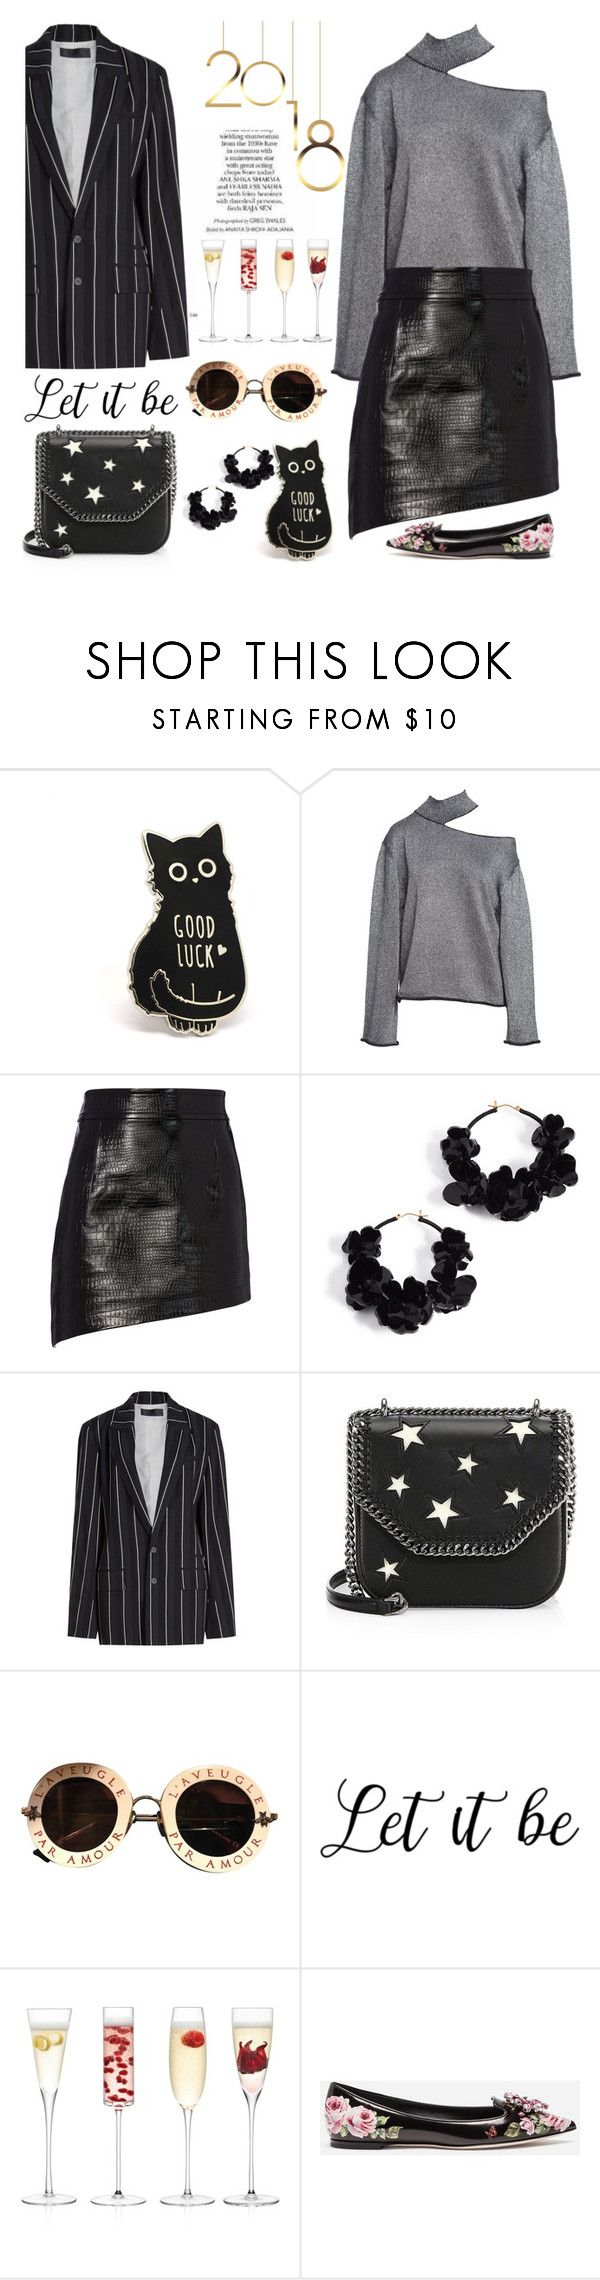 """""""Champagne brunches"""" by pensivepeacock ❤ liked on Polyvore featuring Helmut Lang, Oscar de la Renta, Haider Ackermann, STELLA McCARTNEY, Gucci, LSA International and Dolce&Gabbana"""